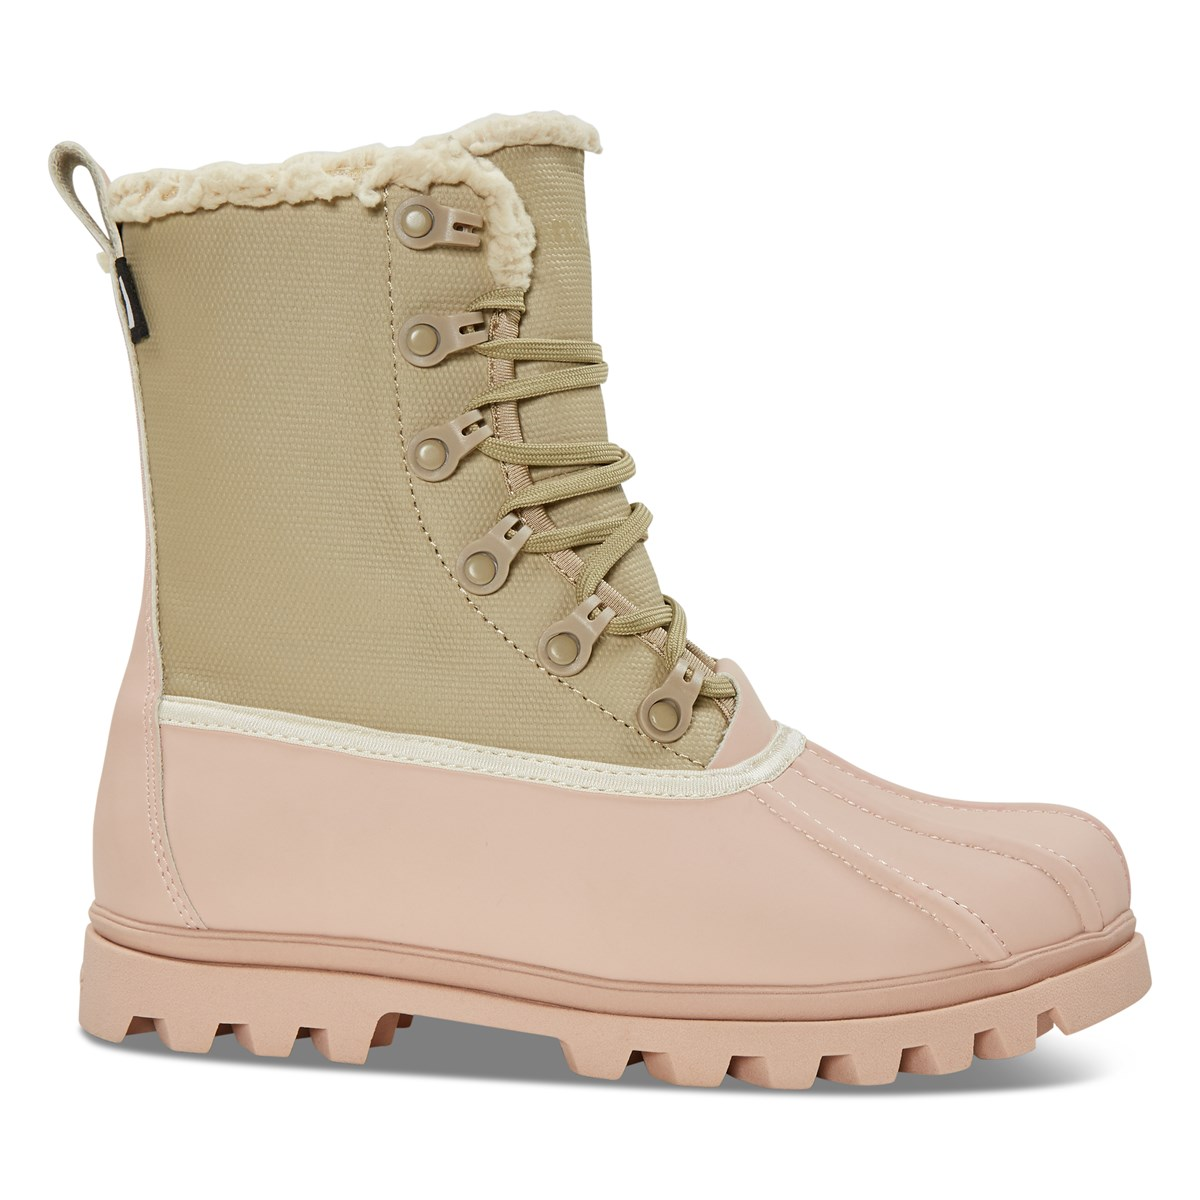 Women's Jimmy 3.0 Boots in Pink